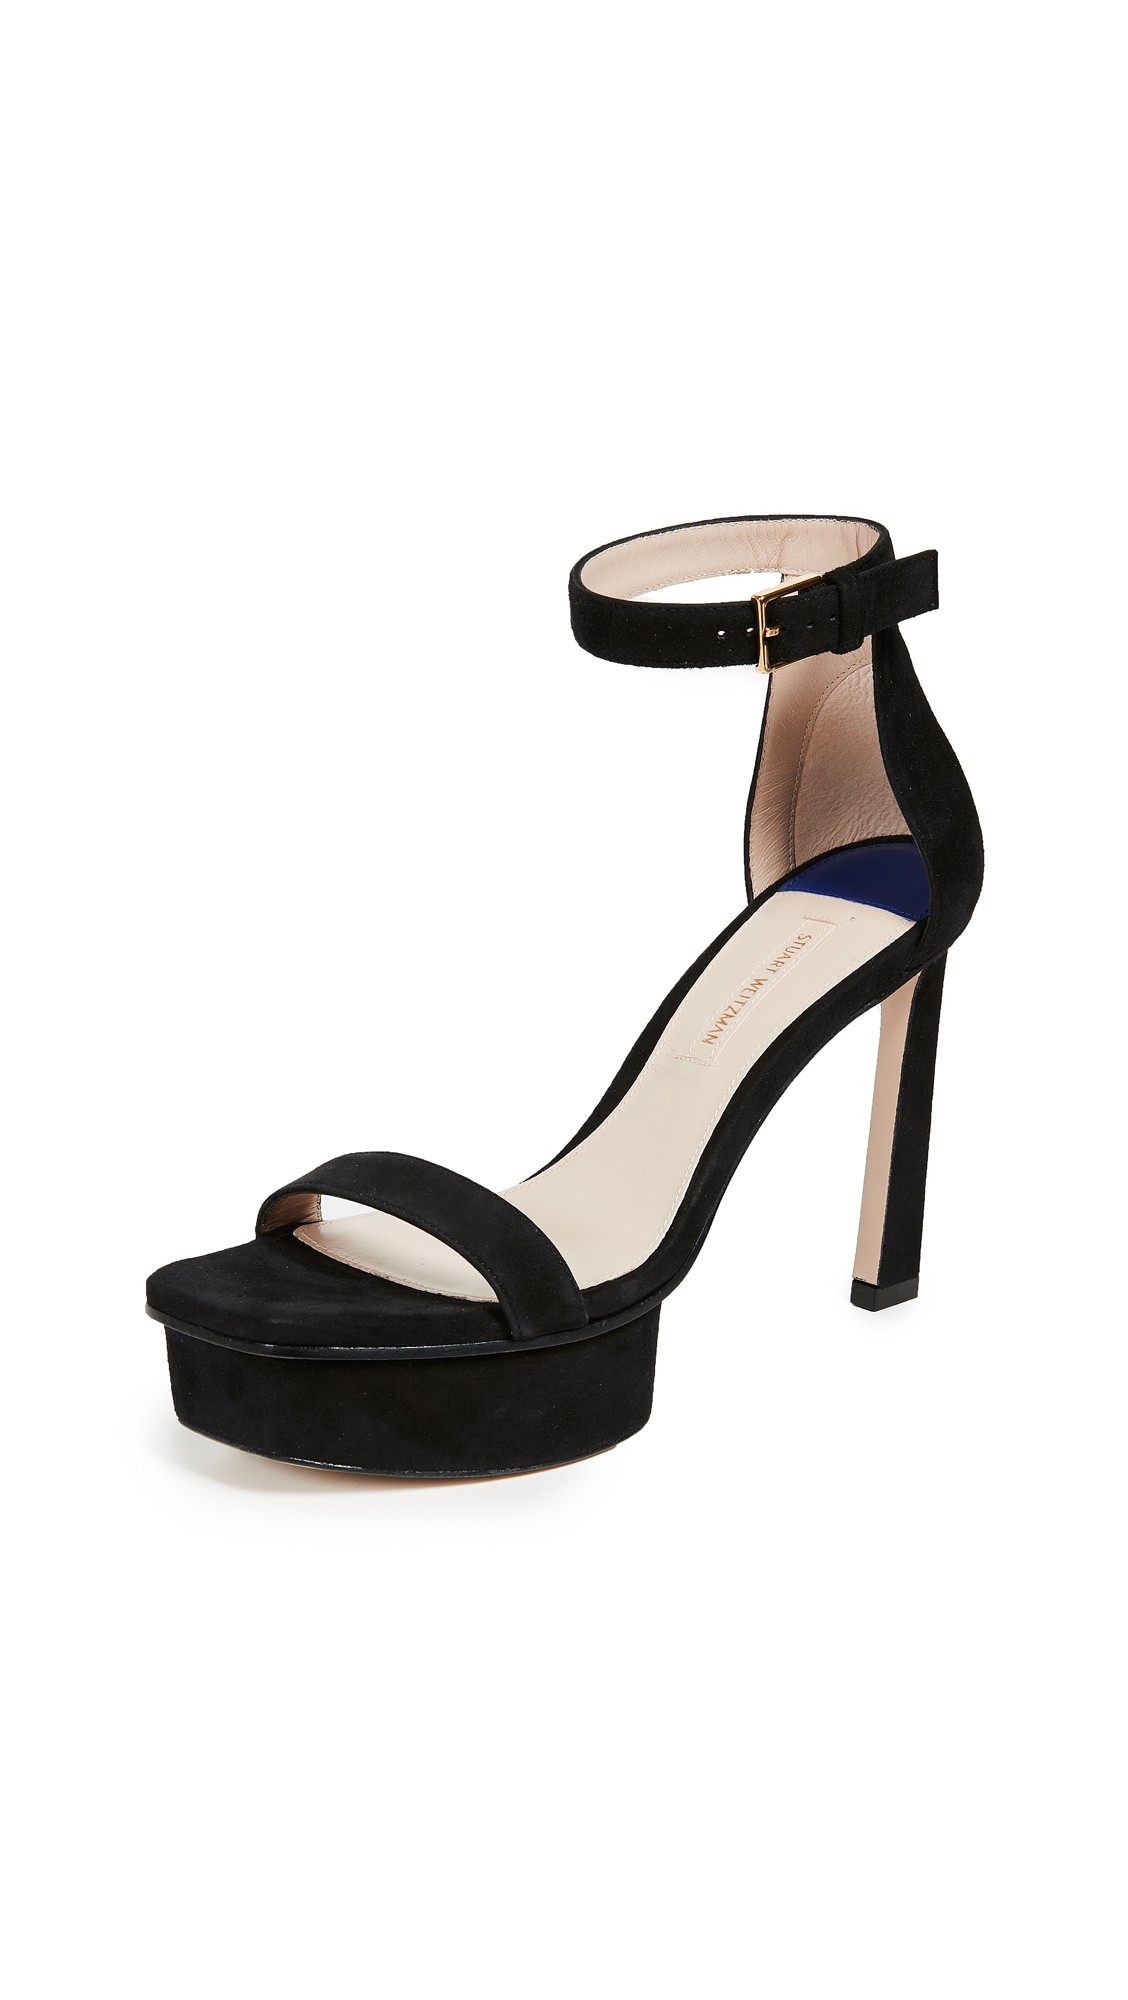 Stuart Weitzman Disco Sandals - Black